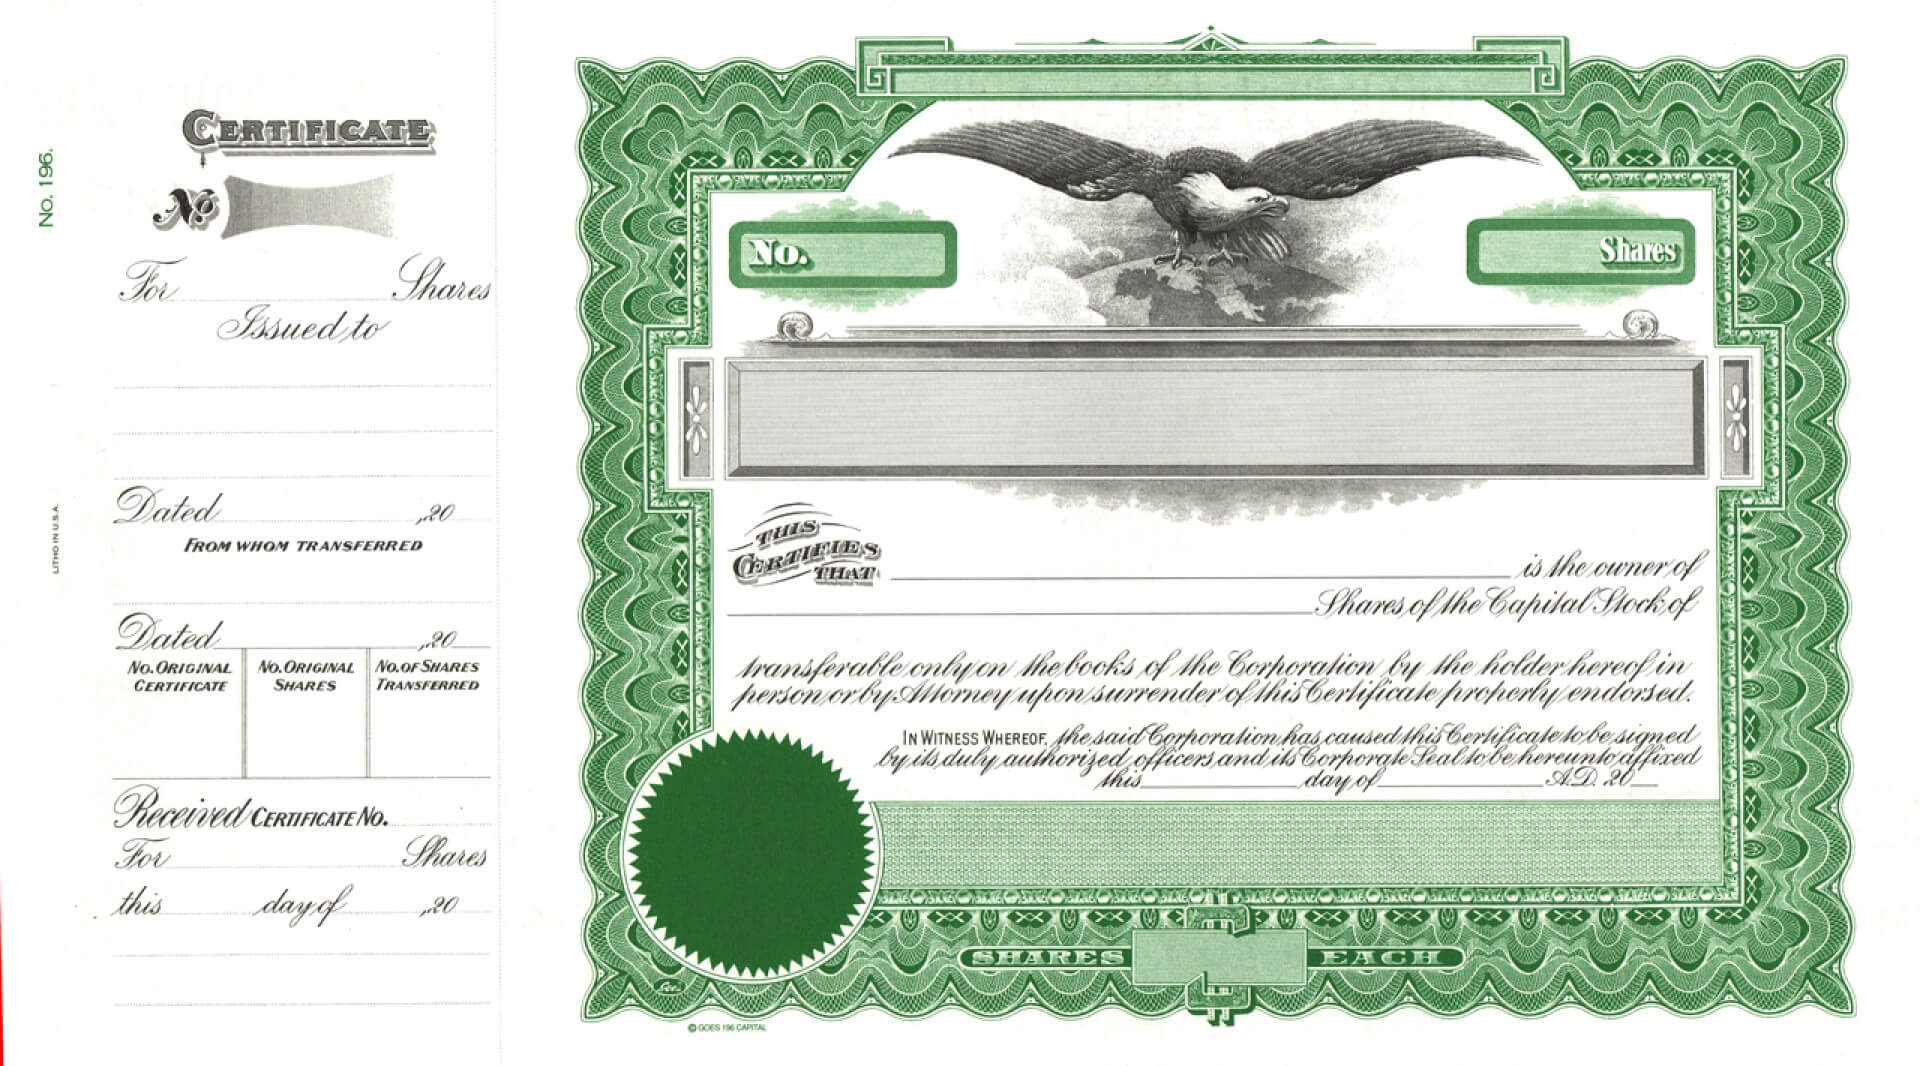 004 Free Stock Certificate Online Generator With Pertaining To Free Stock Certificate Template Download